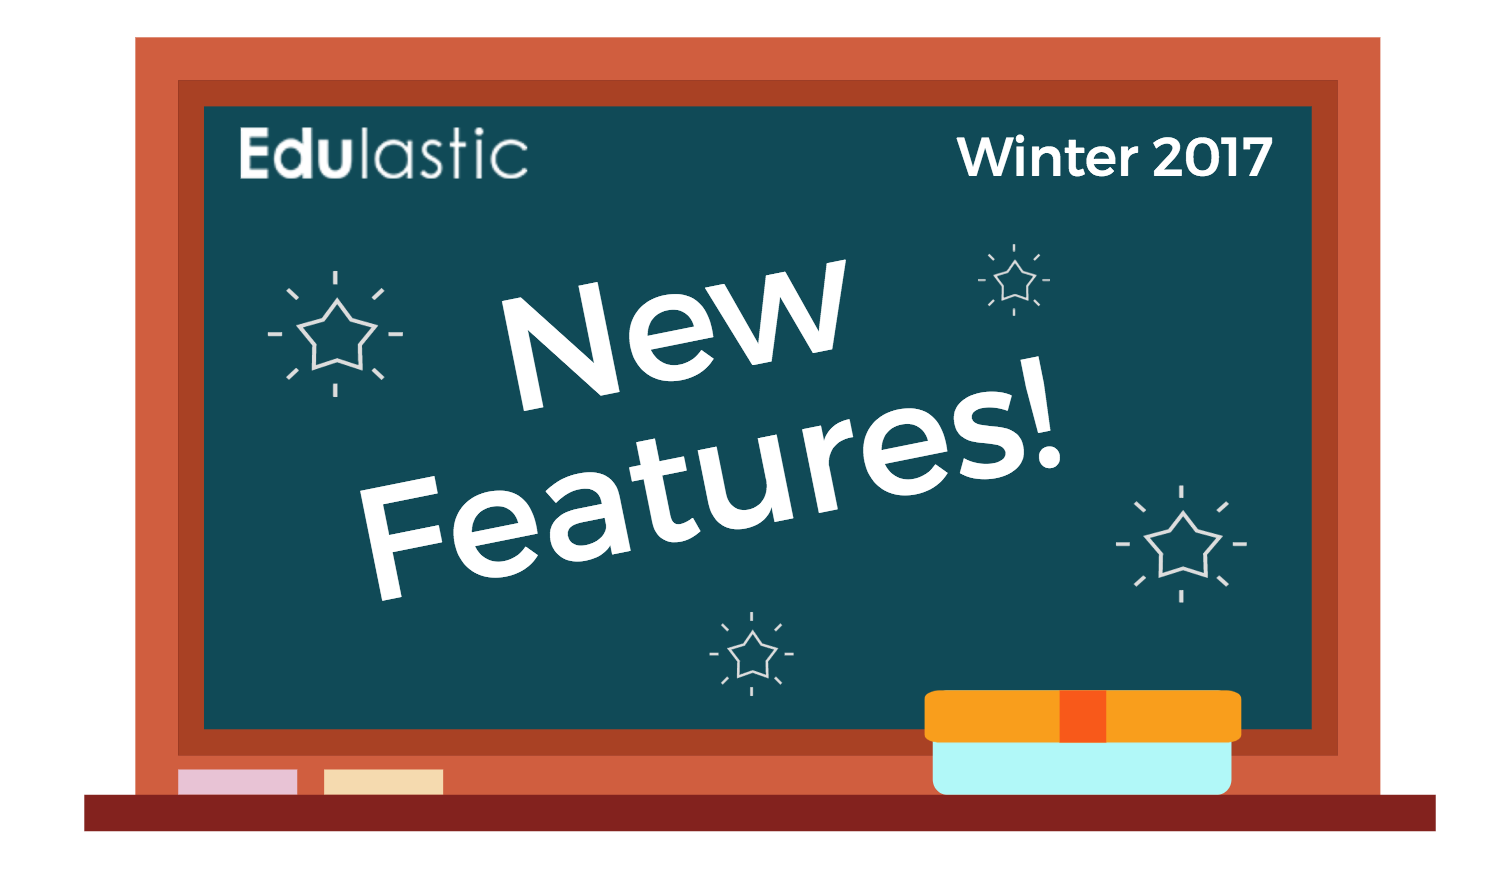 New Features Edulastic Winter 2017